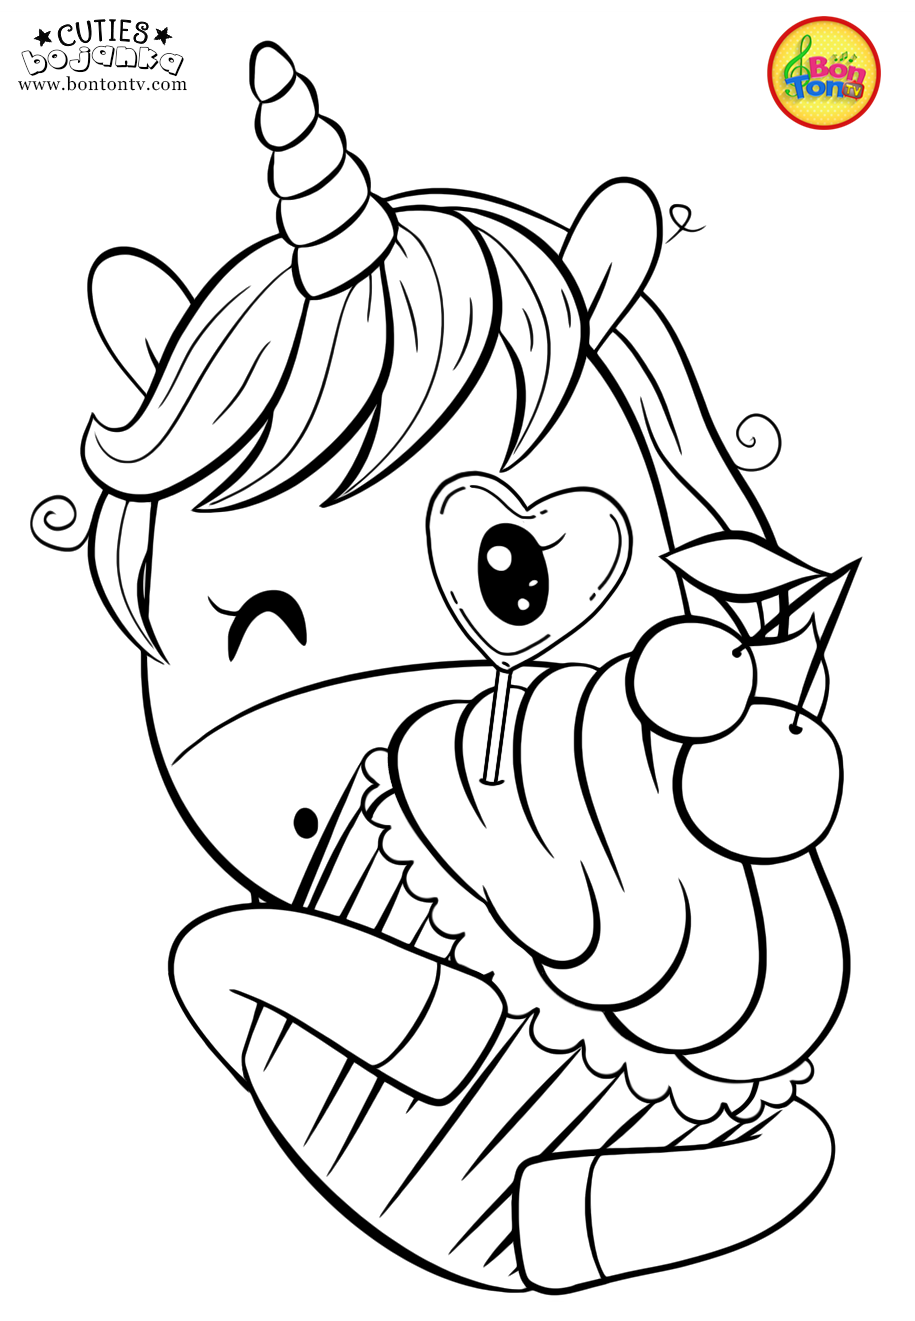 FREE Jungle Animal Coloring Pages | 1321x915